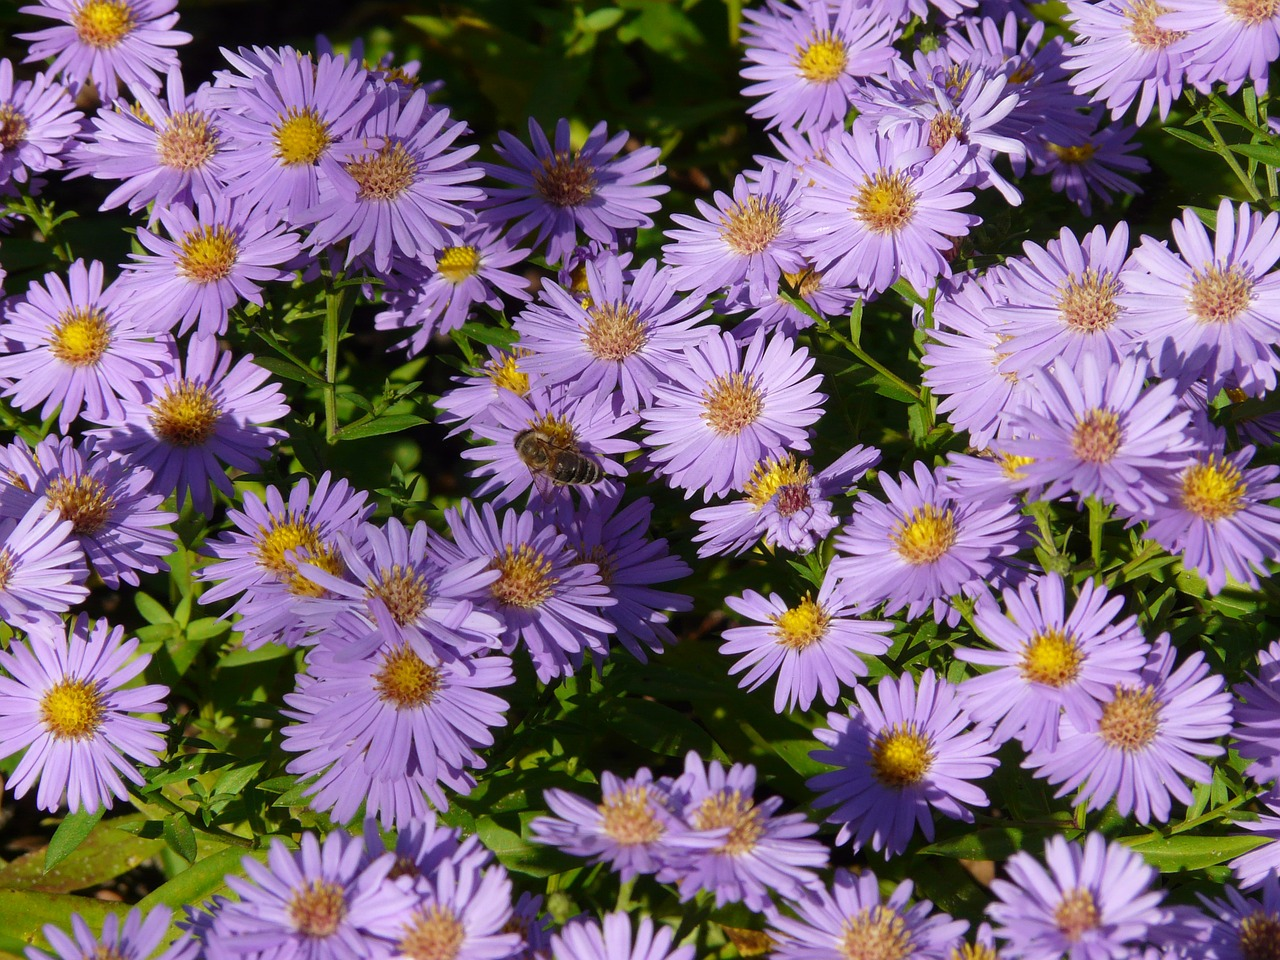 smooth leaf aster,aster,herbstaster,flower,bloom,flowers,ornamental plant,purple,violet,flora,colorful,color,bee,free pictures, free photos, free images, royalty free, free illustrations, public domain